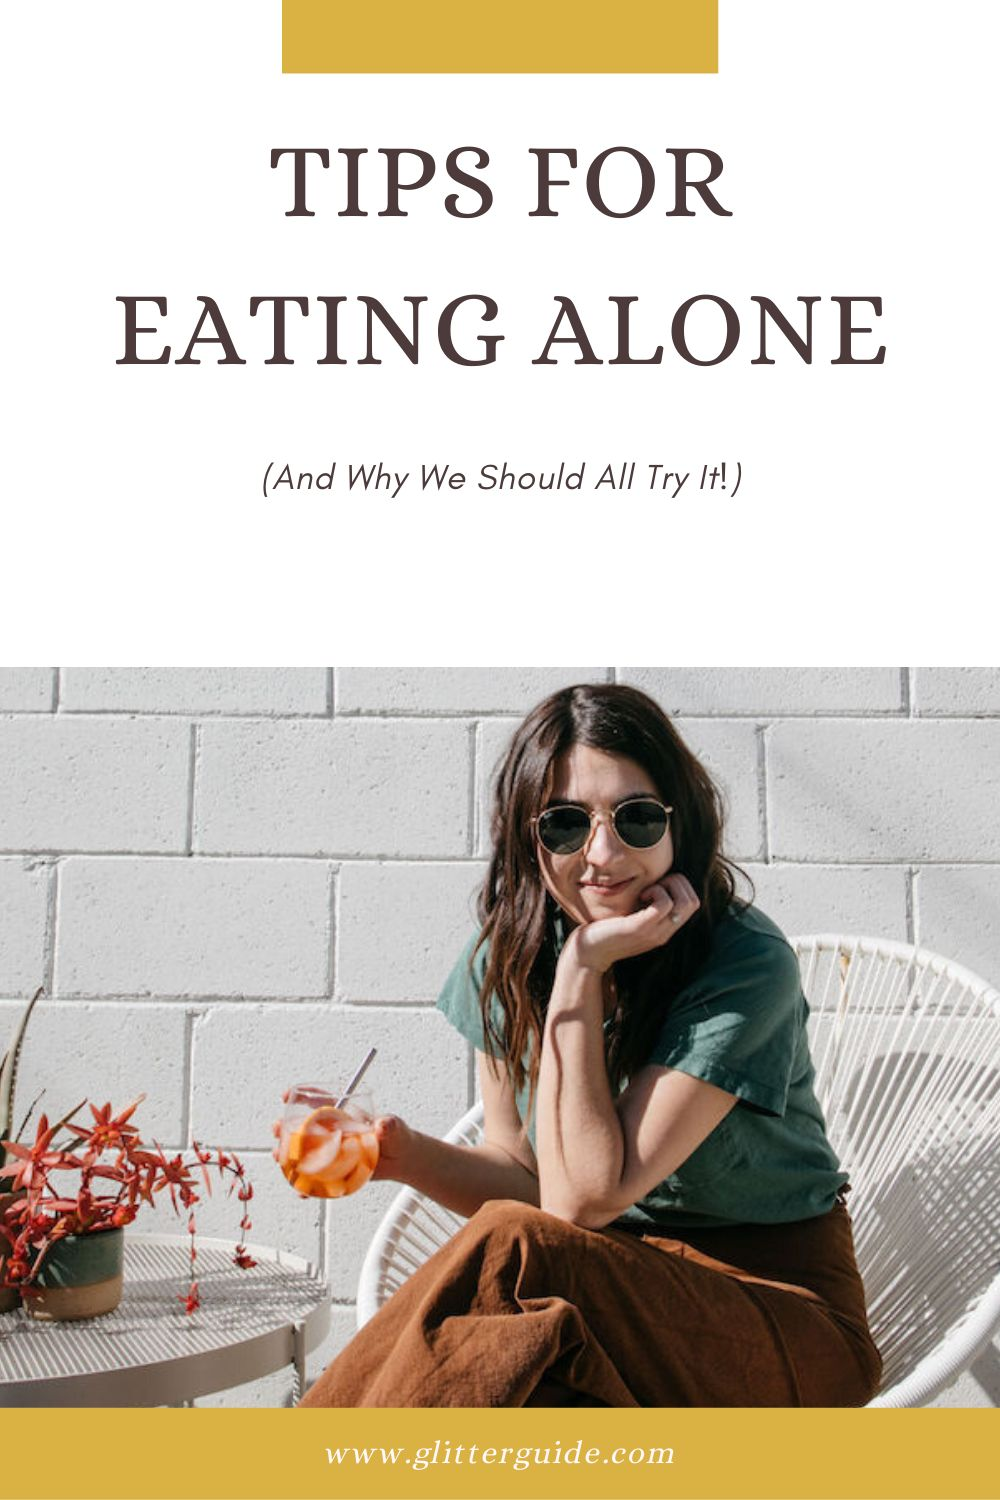 Tips For Eating Alone (And Why We Should All Try It!)